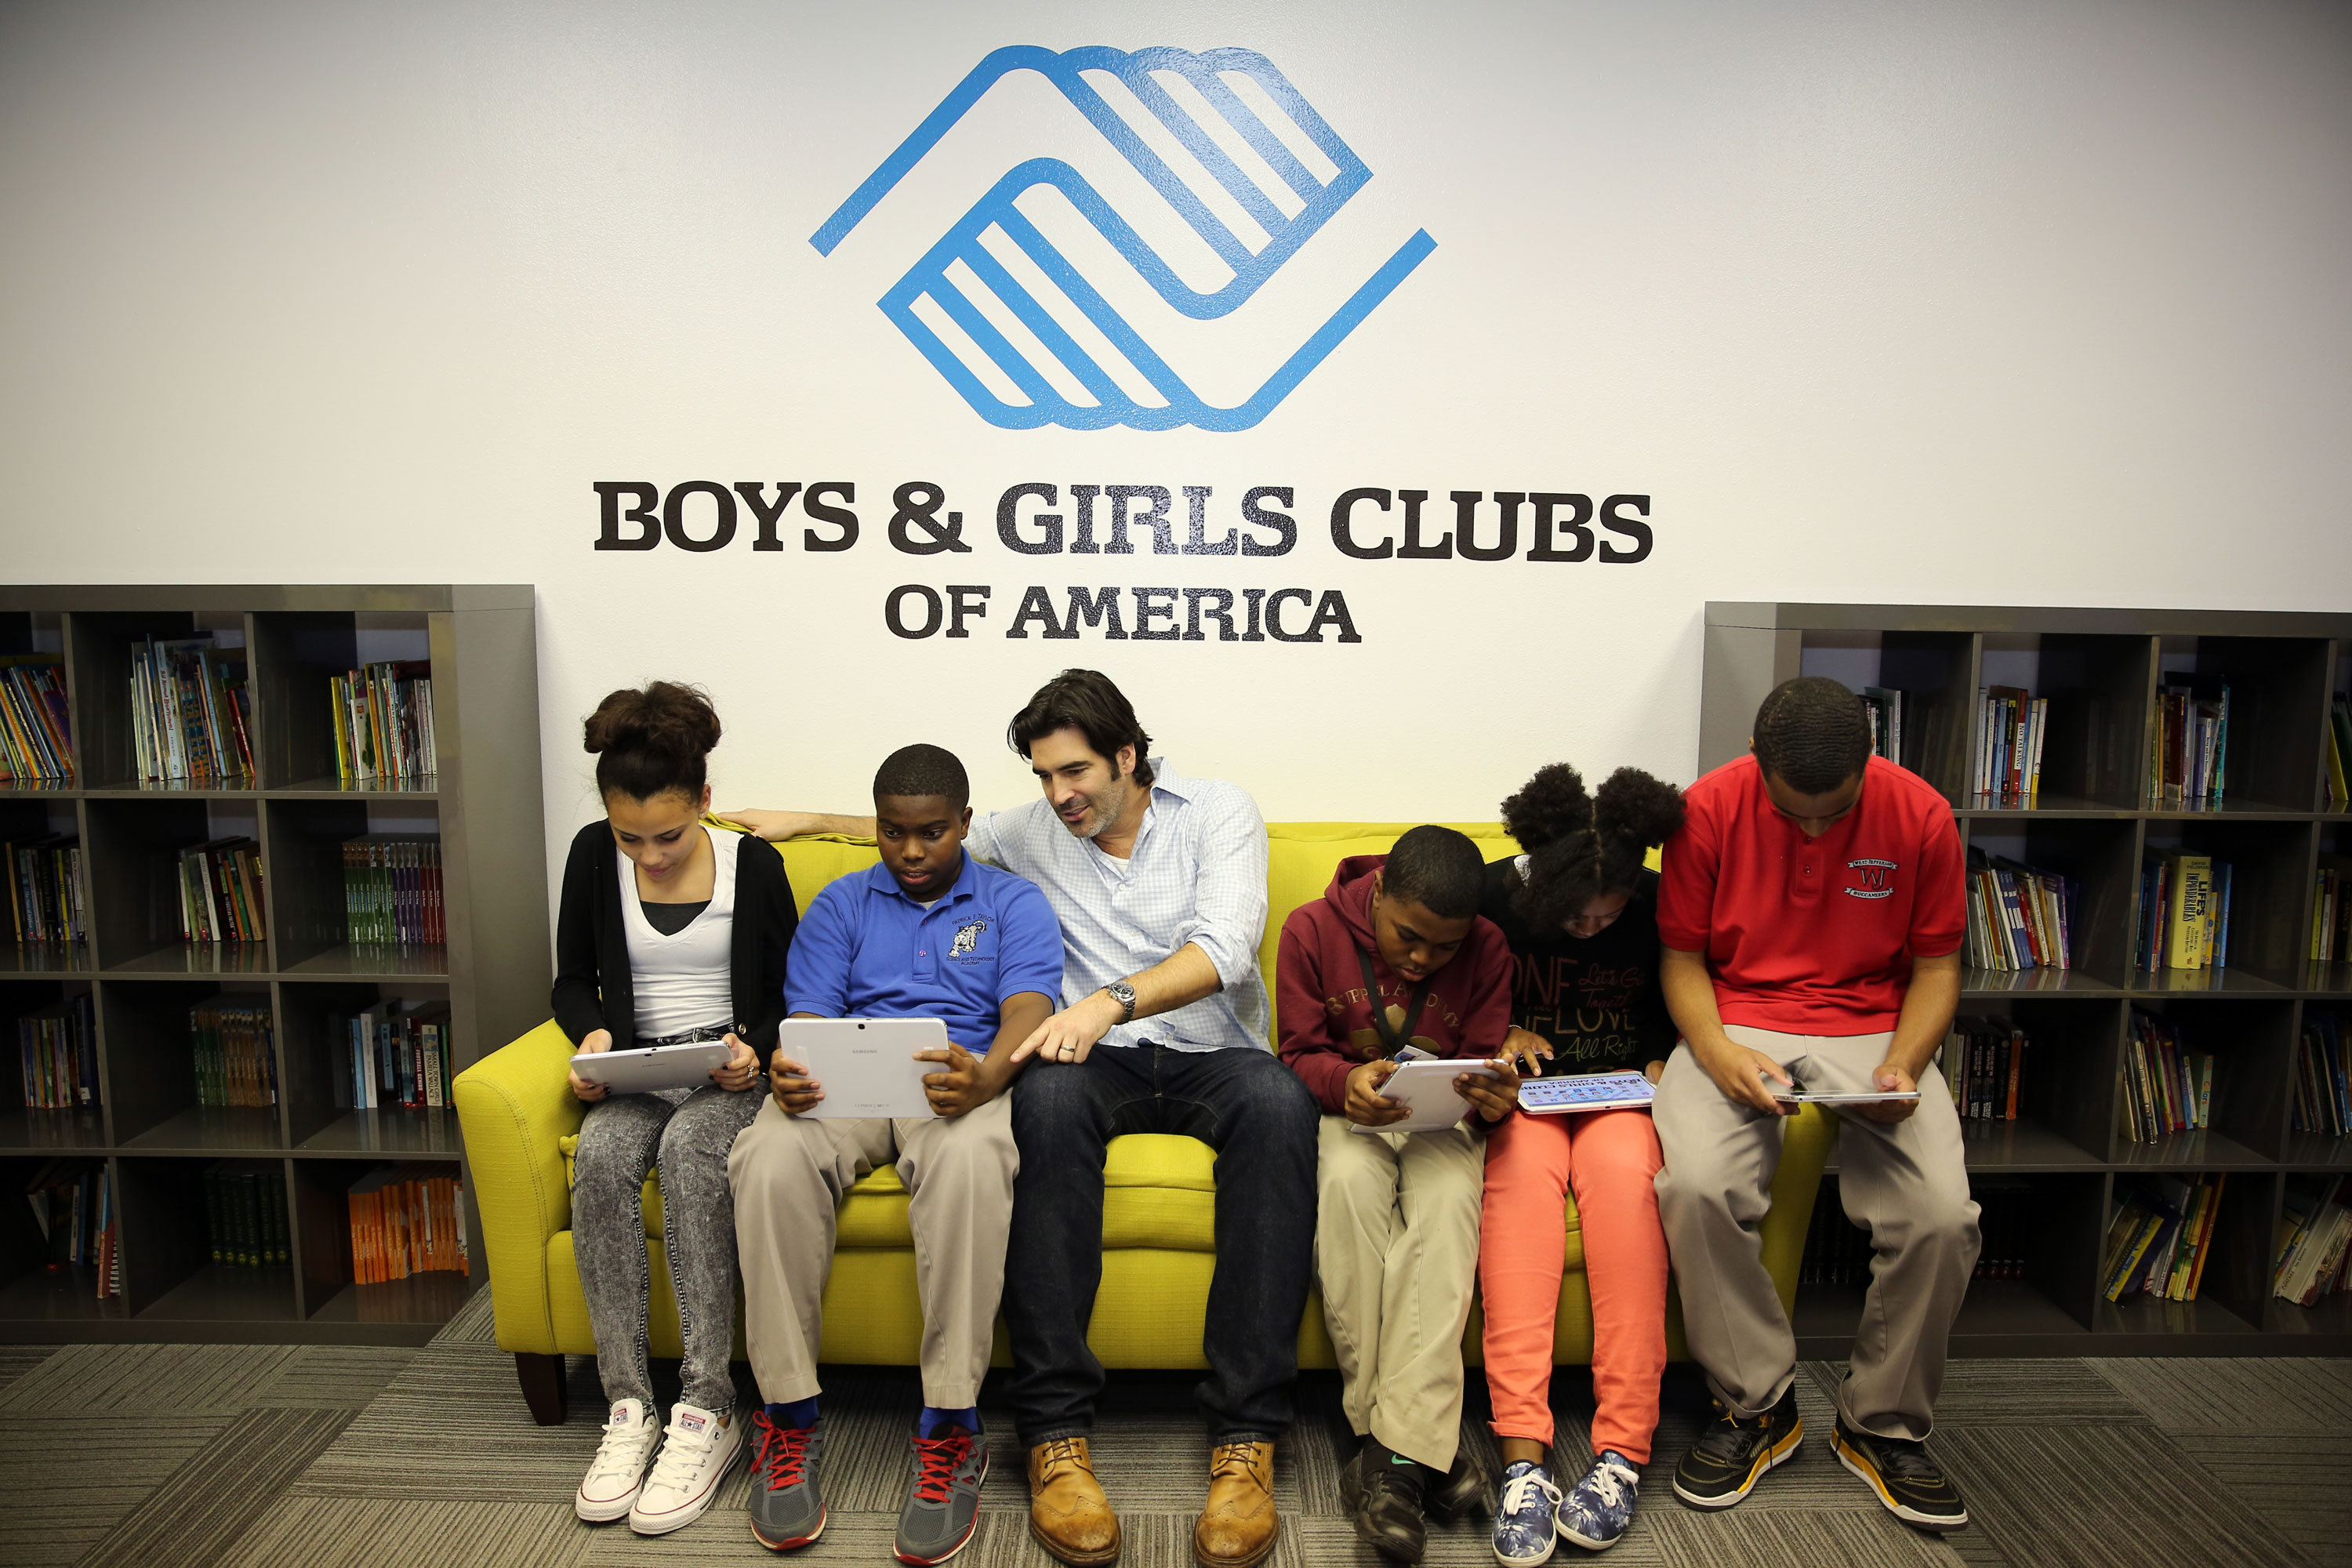 TV personality and celebrity designer Carter Oosterhouse, center, interacts with youth in the Tween Tech Center at Boys & Girls Clubs of Southeast Louisiana.  The center is part of a partnership between Samsung Mobile and Boys & Girls Clubs of America to inspire kids' curiosity in STEM. (Photo: Business Wire)